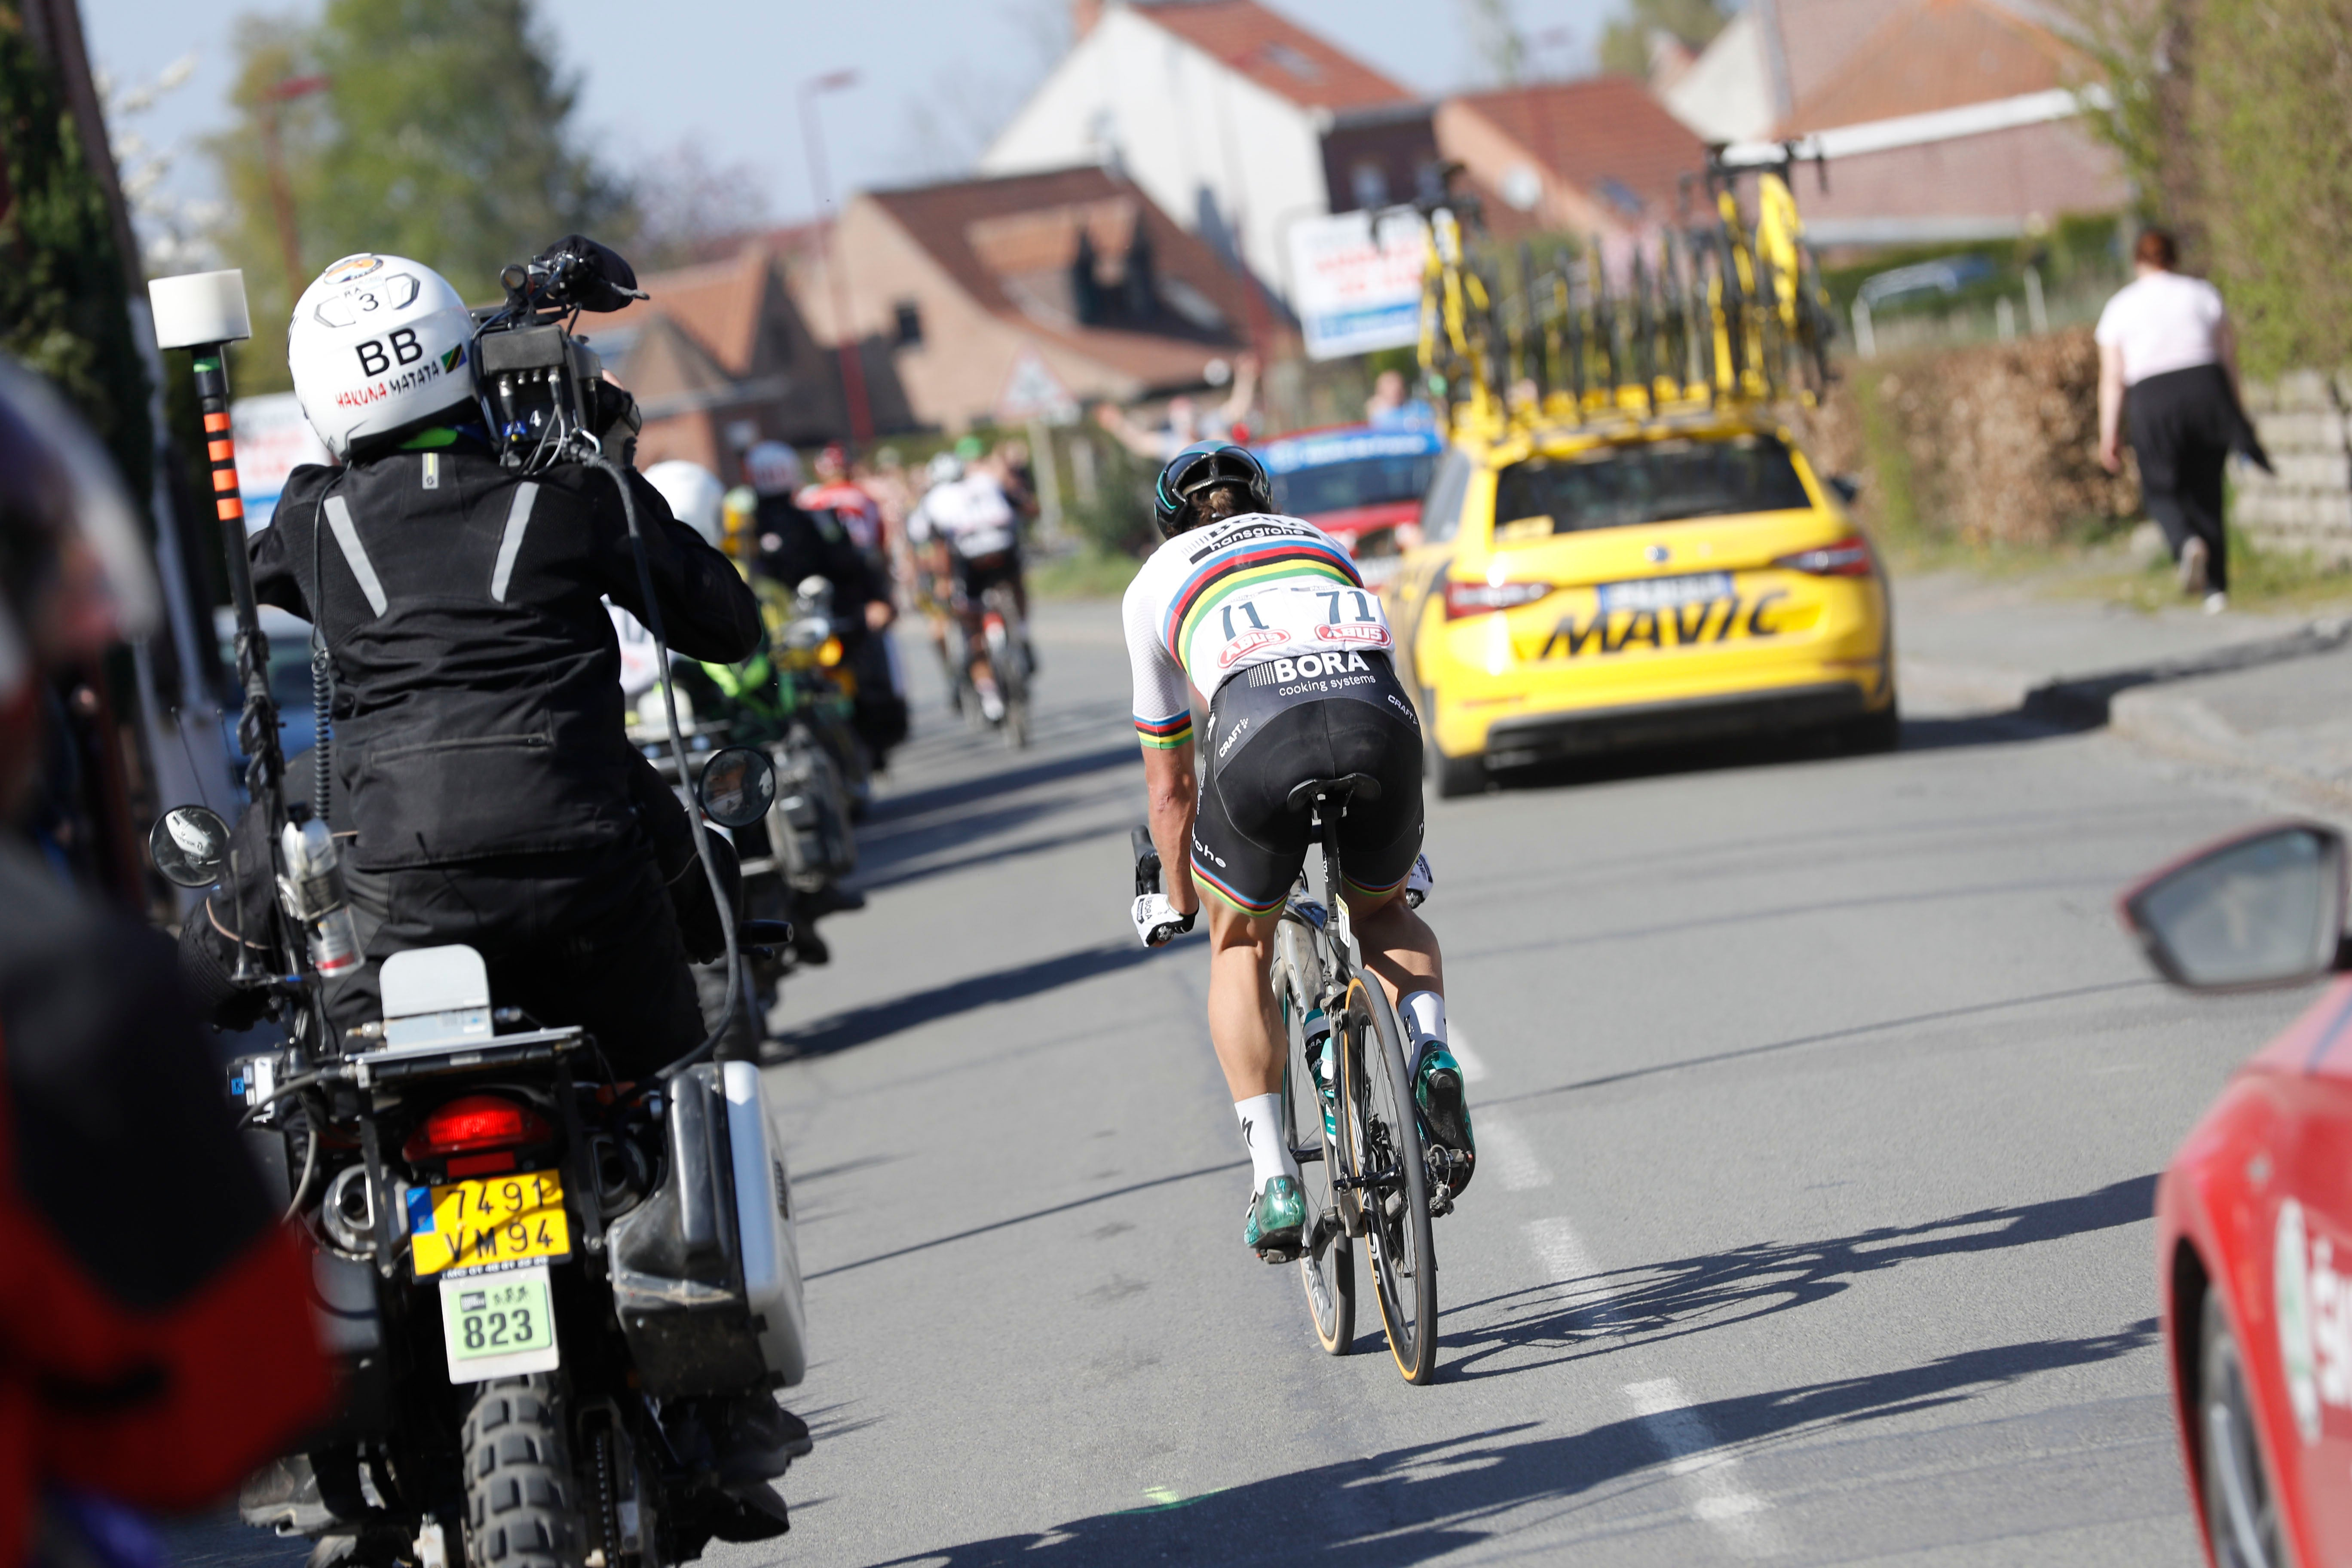 After decisive attacks, with 77km and 34km to go, Peter Sagan suffered flat tires that killed his chances of victory.